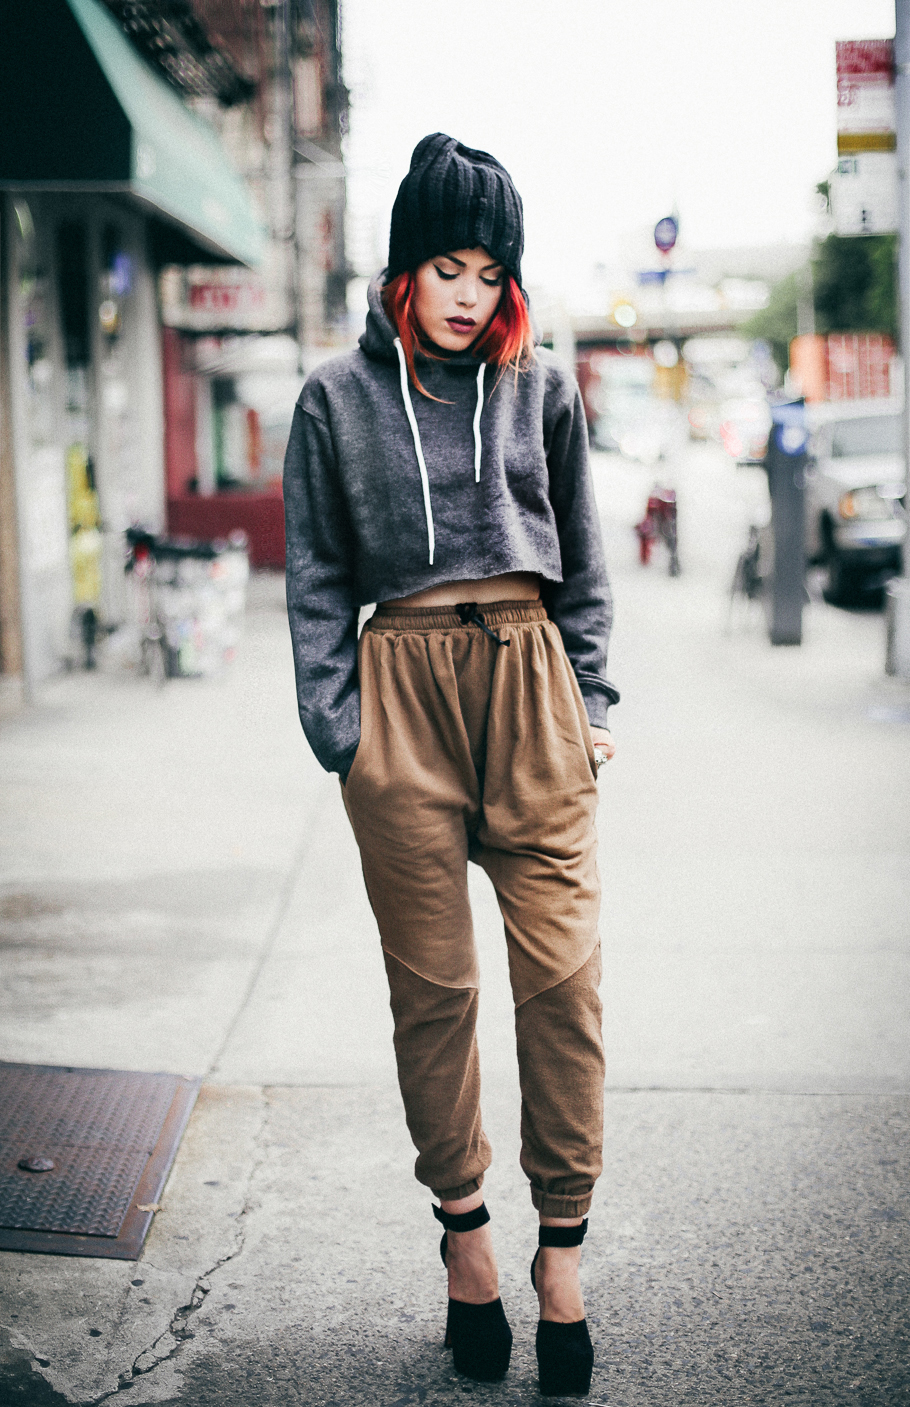 Le Happy wearing Daniel Patrick joggers and cropped hoodie